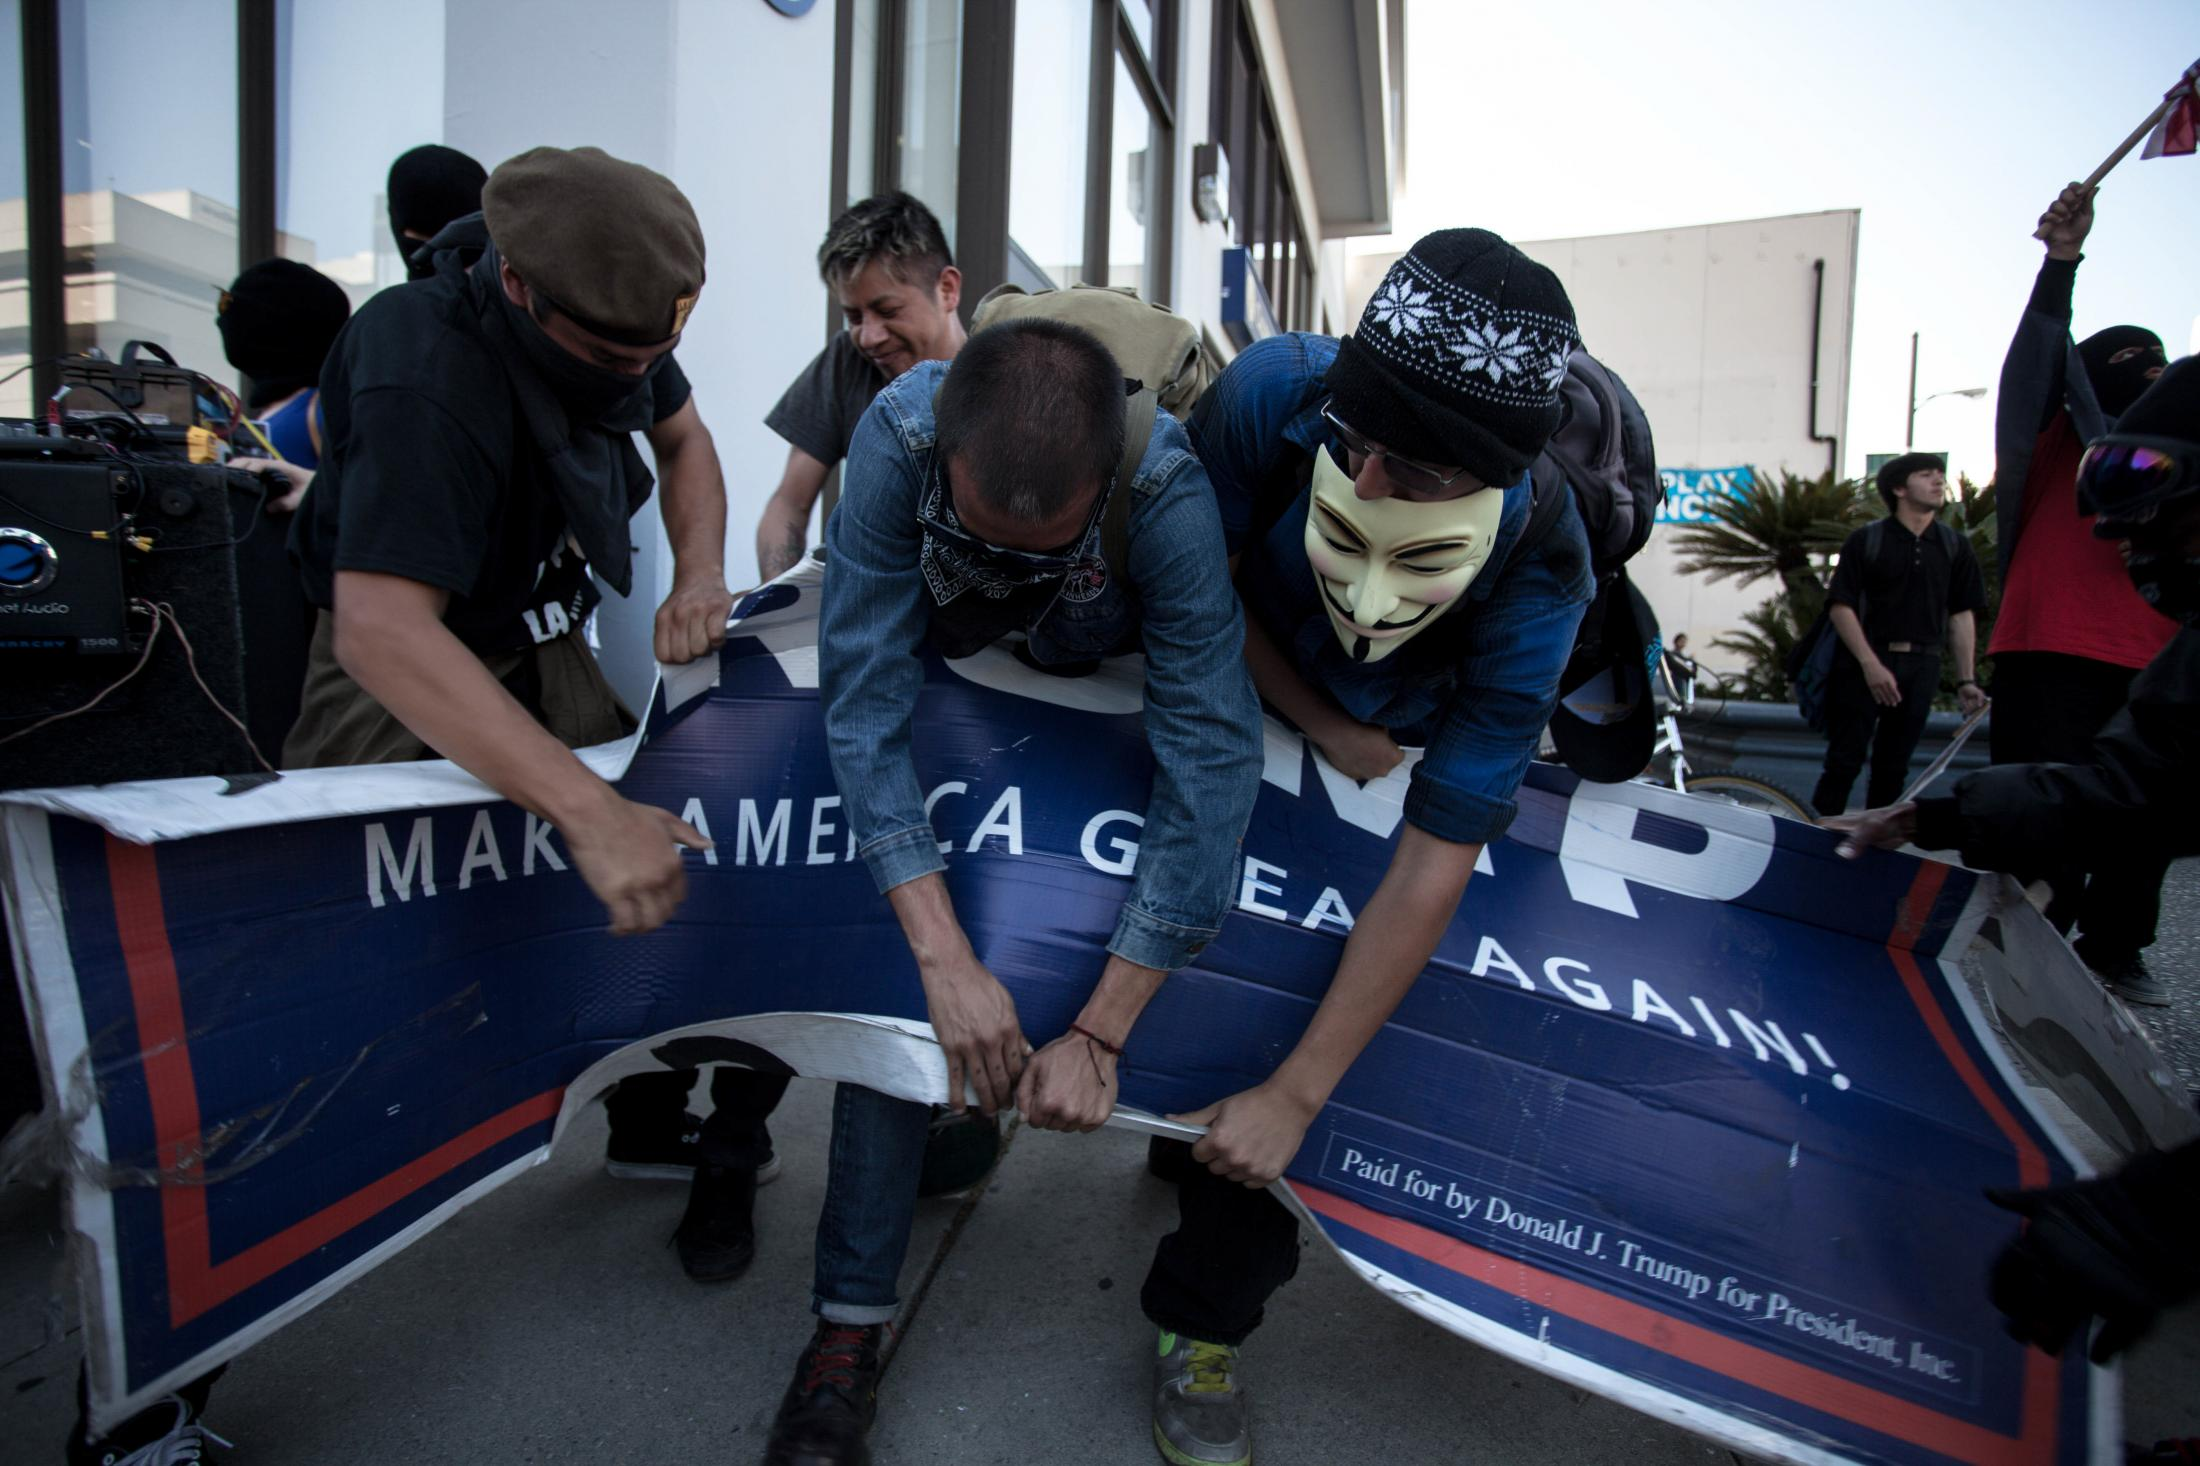 Members of ANTIFA, tear apart a Trump Campaign Sign during a protest on November 4, 2018.